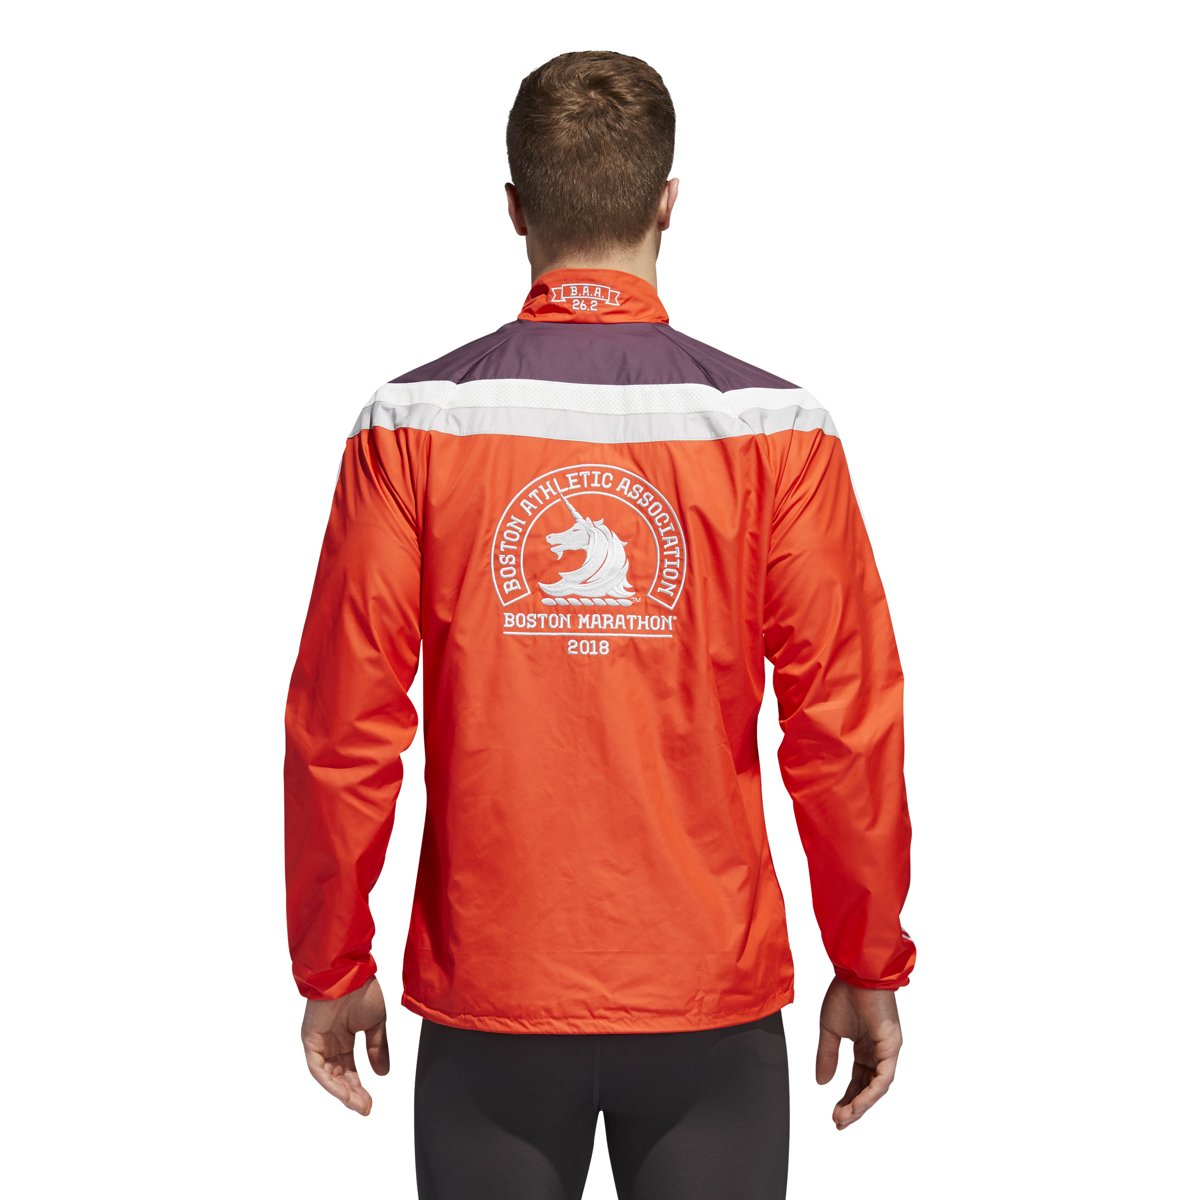 b369a6da8213b Amazon.com  adidas Men s 2018 Boston Marathon Celebration Jacket  Clothing